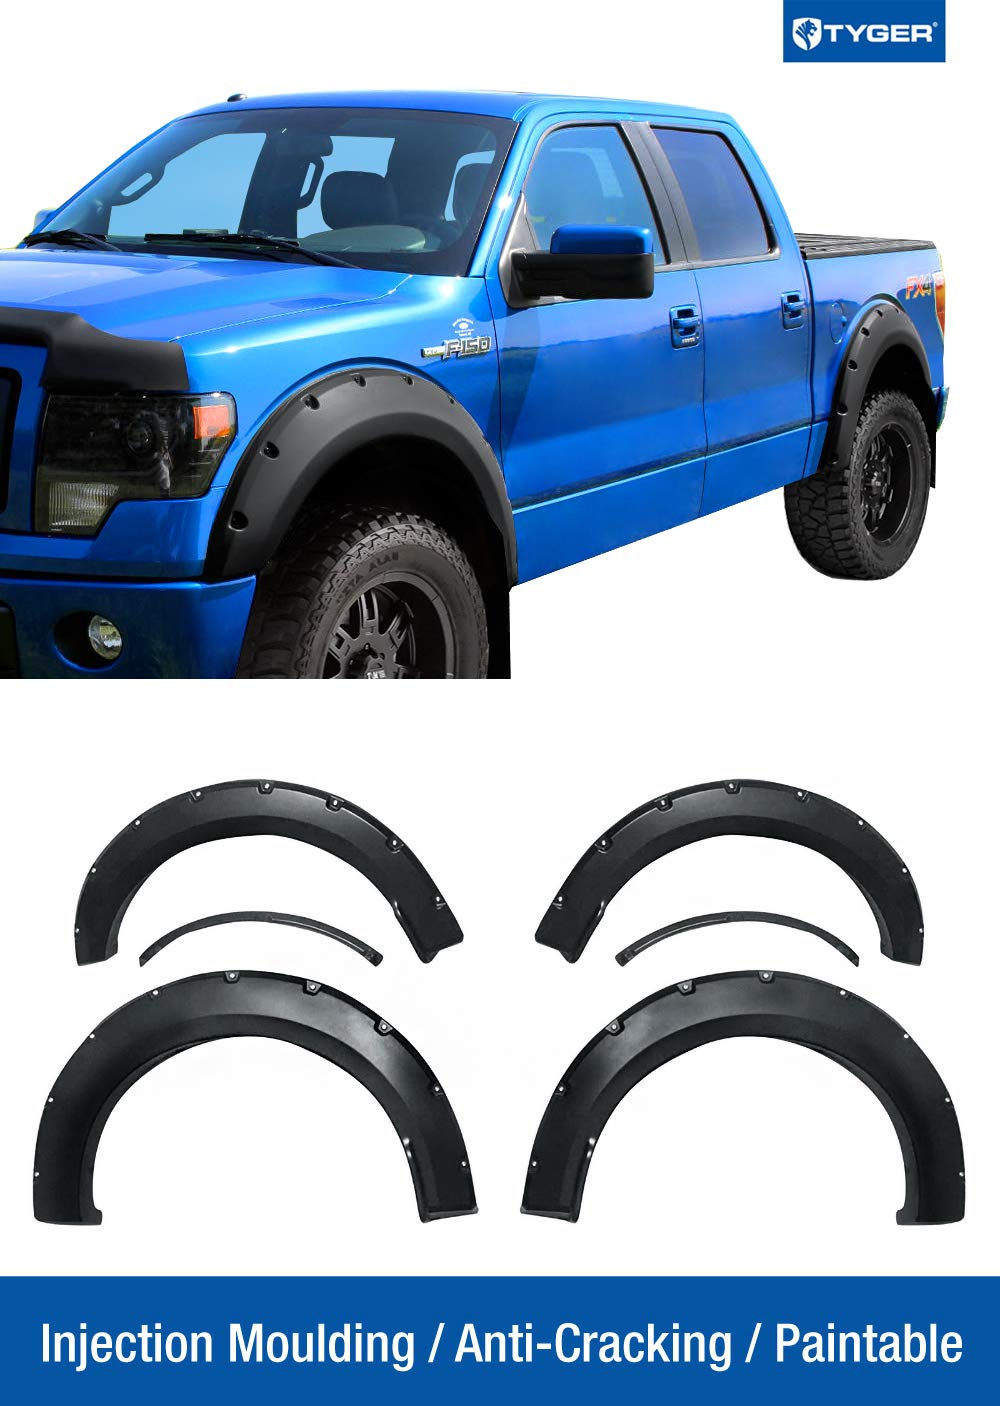 Tyger Auto TG-FF8F4168 for 15-16 Ford F150, Matte Black Pocket Bolt-Riveted Style Fender Flare 4 Piece Set